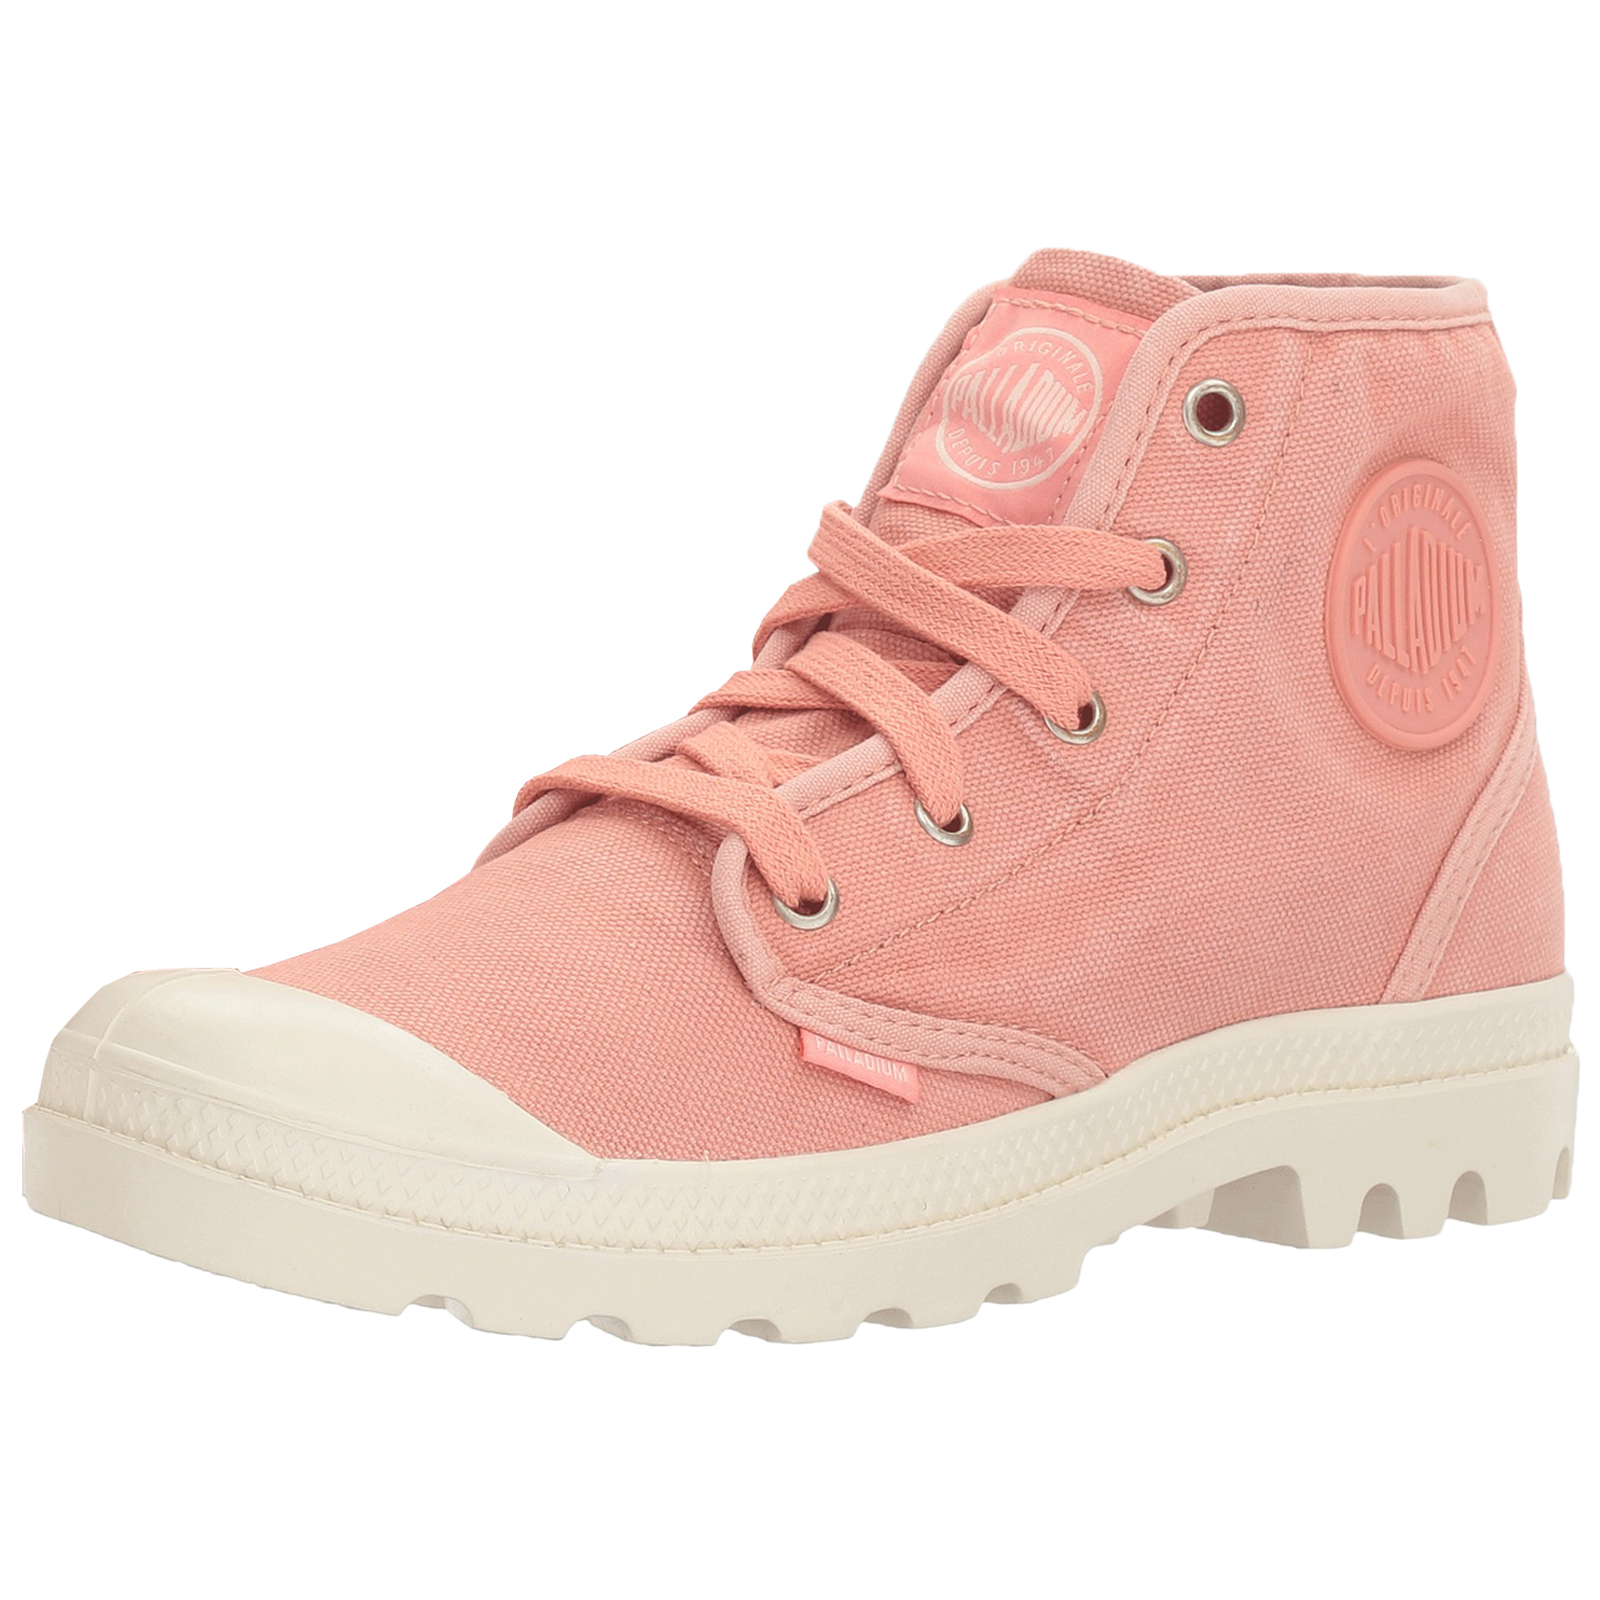 Palladium Pampa Hi Boots raspberry-marshallow - 37